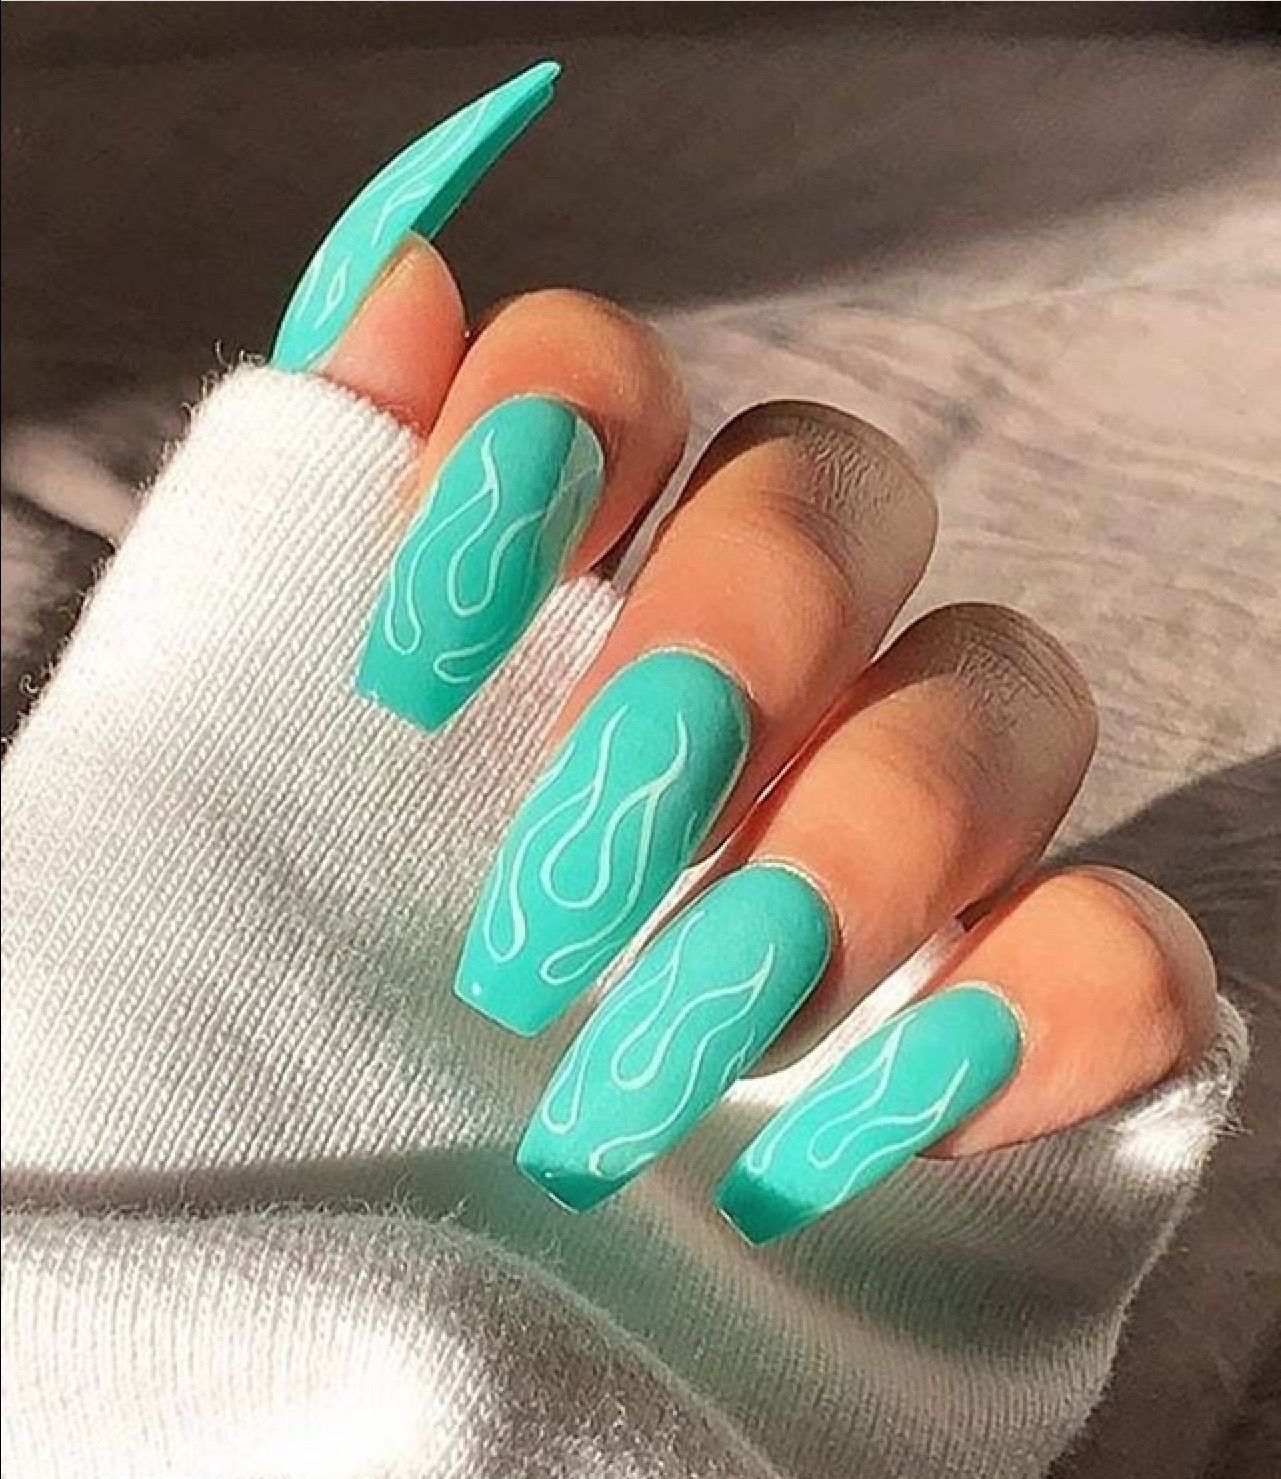 Teal Coffin Nails With Simple White Fire Design Pinterest Cassiebryan99 Coffin Nails Designs Pretty Gel Nails Gel Nail Designs